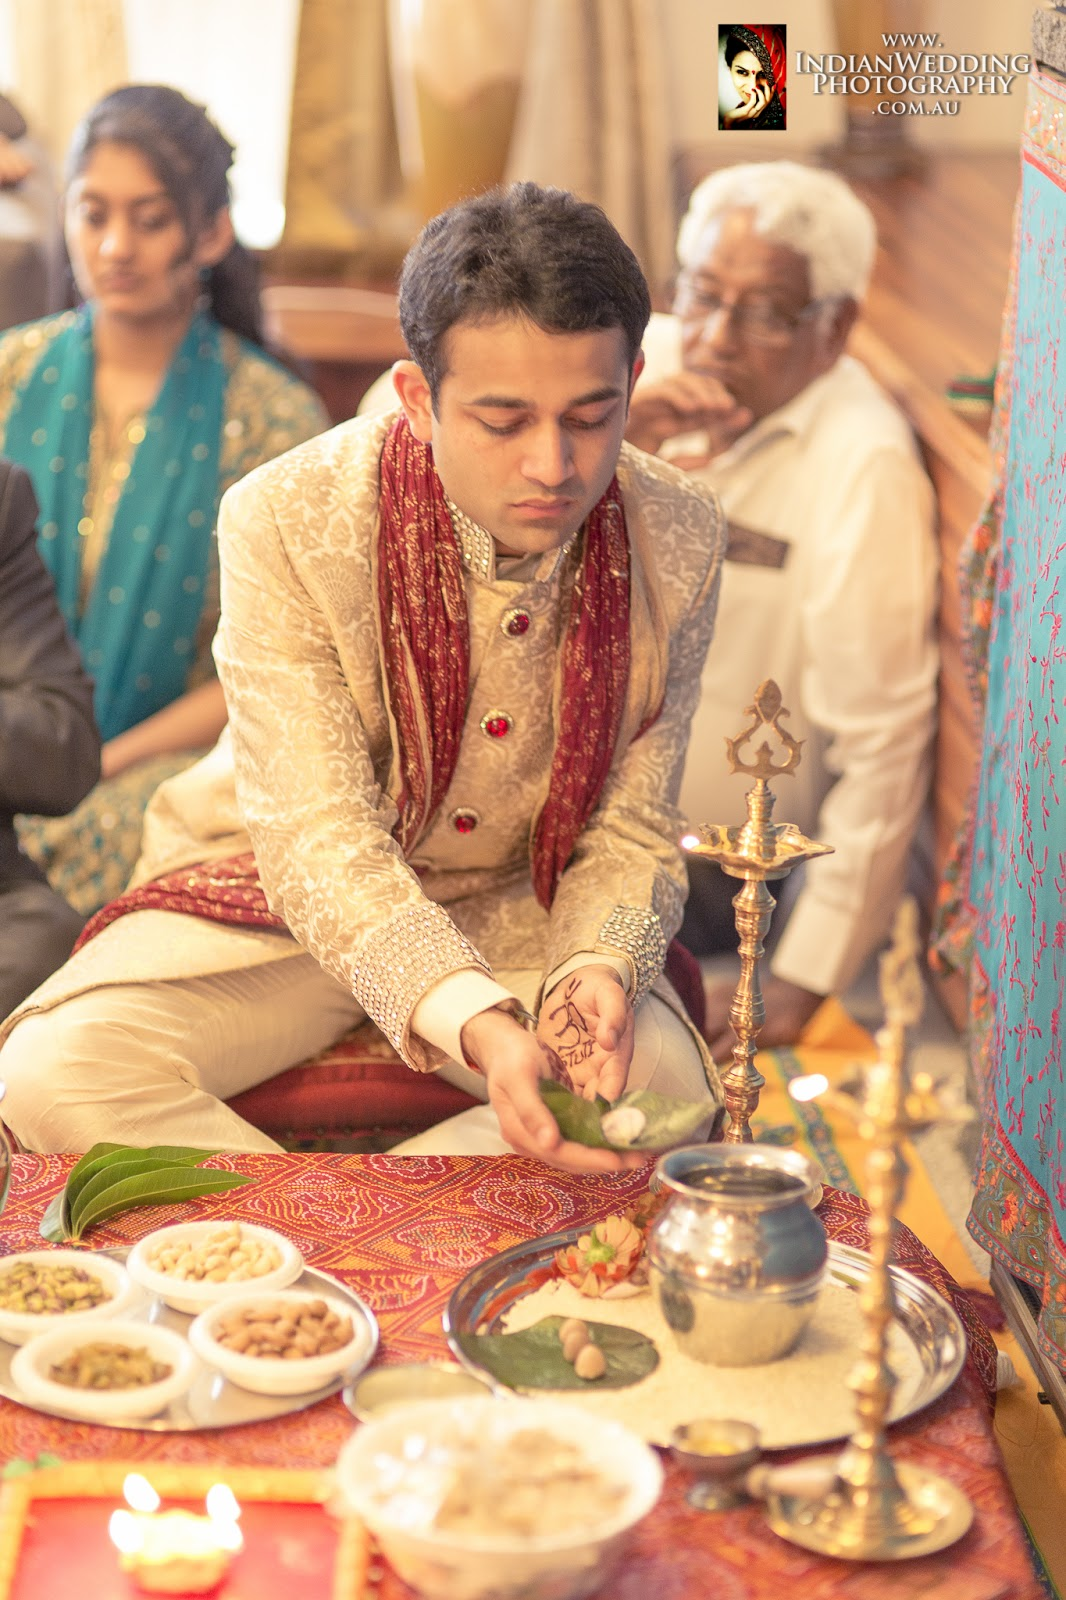 The Ceremony Was Conducted By A Hindu Poojari Priest Who Explained Rituals Along Way Pooja Took Place In An Hour And Guests Were Offered